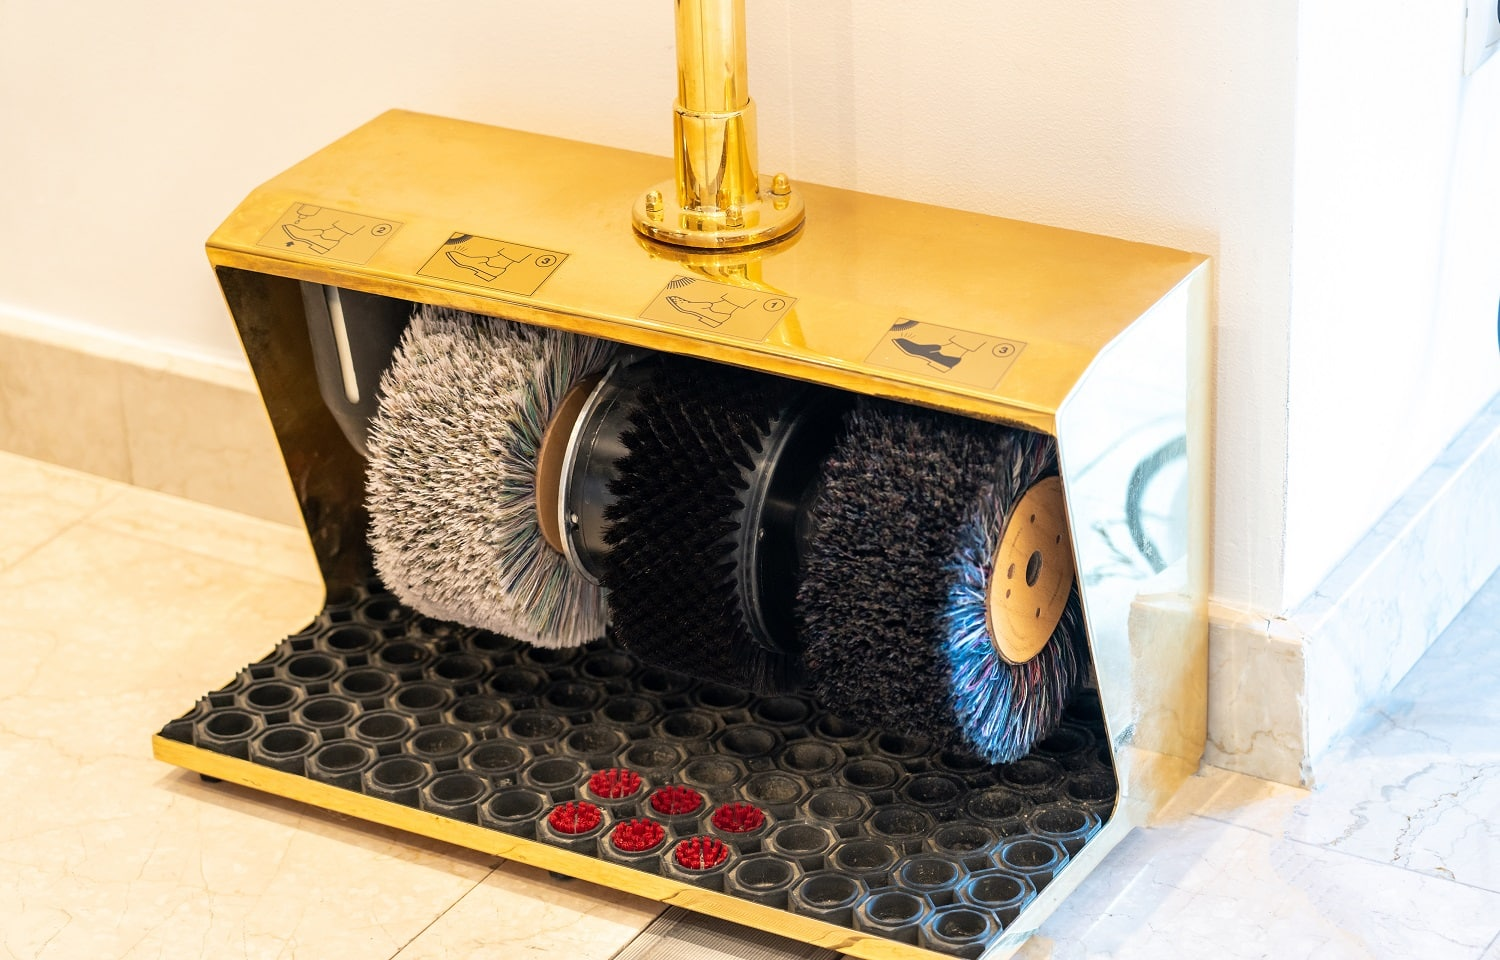 Electric Shoe Polisher Machine in the hotell